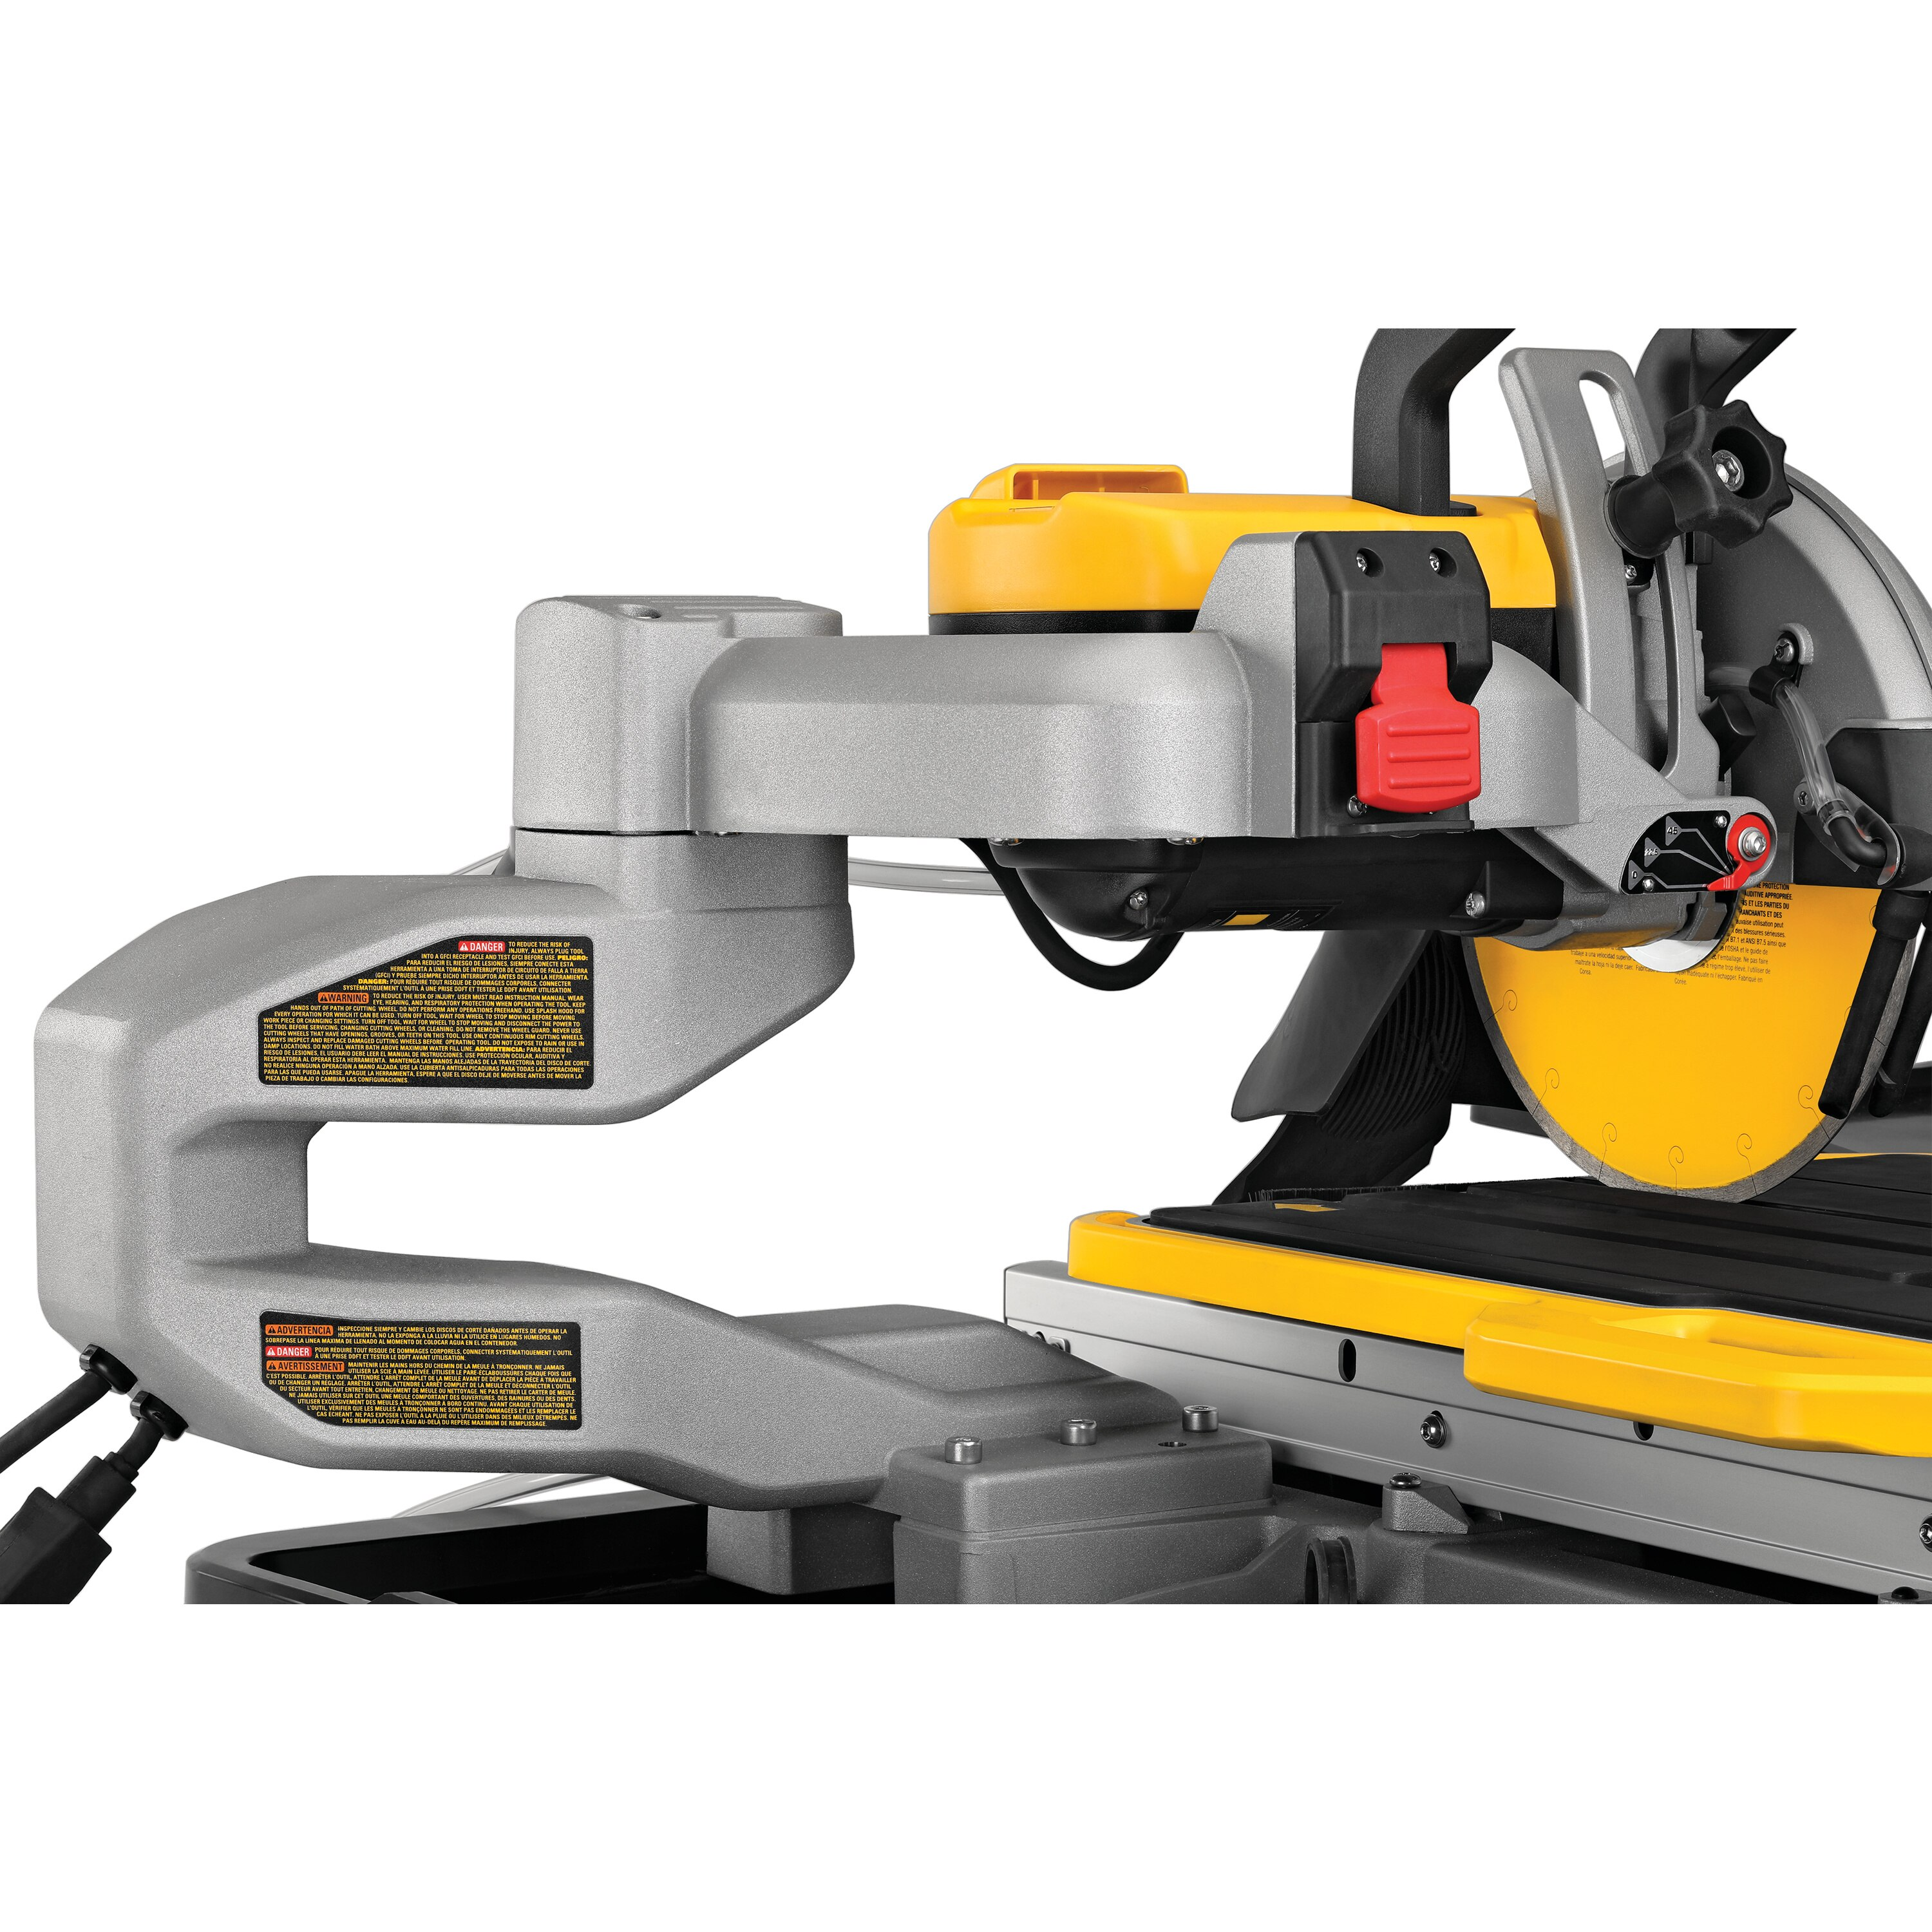 10 in high capacity wet tile saw with